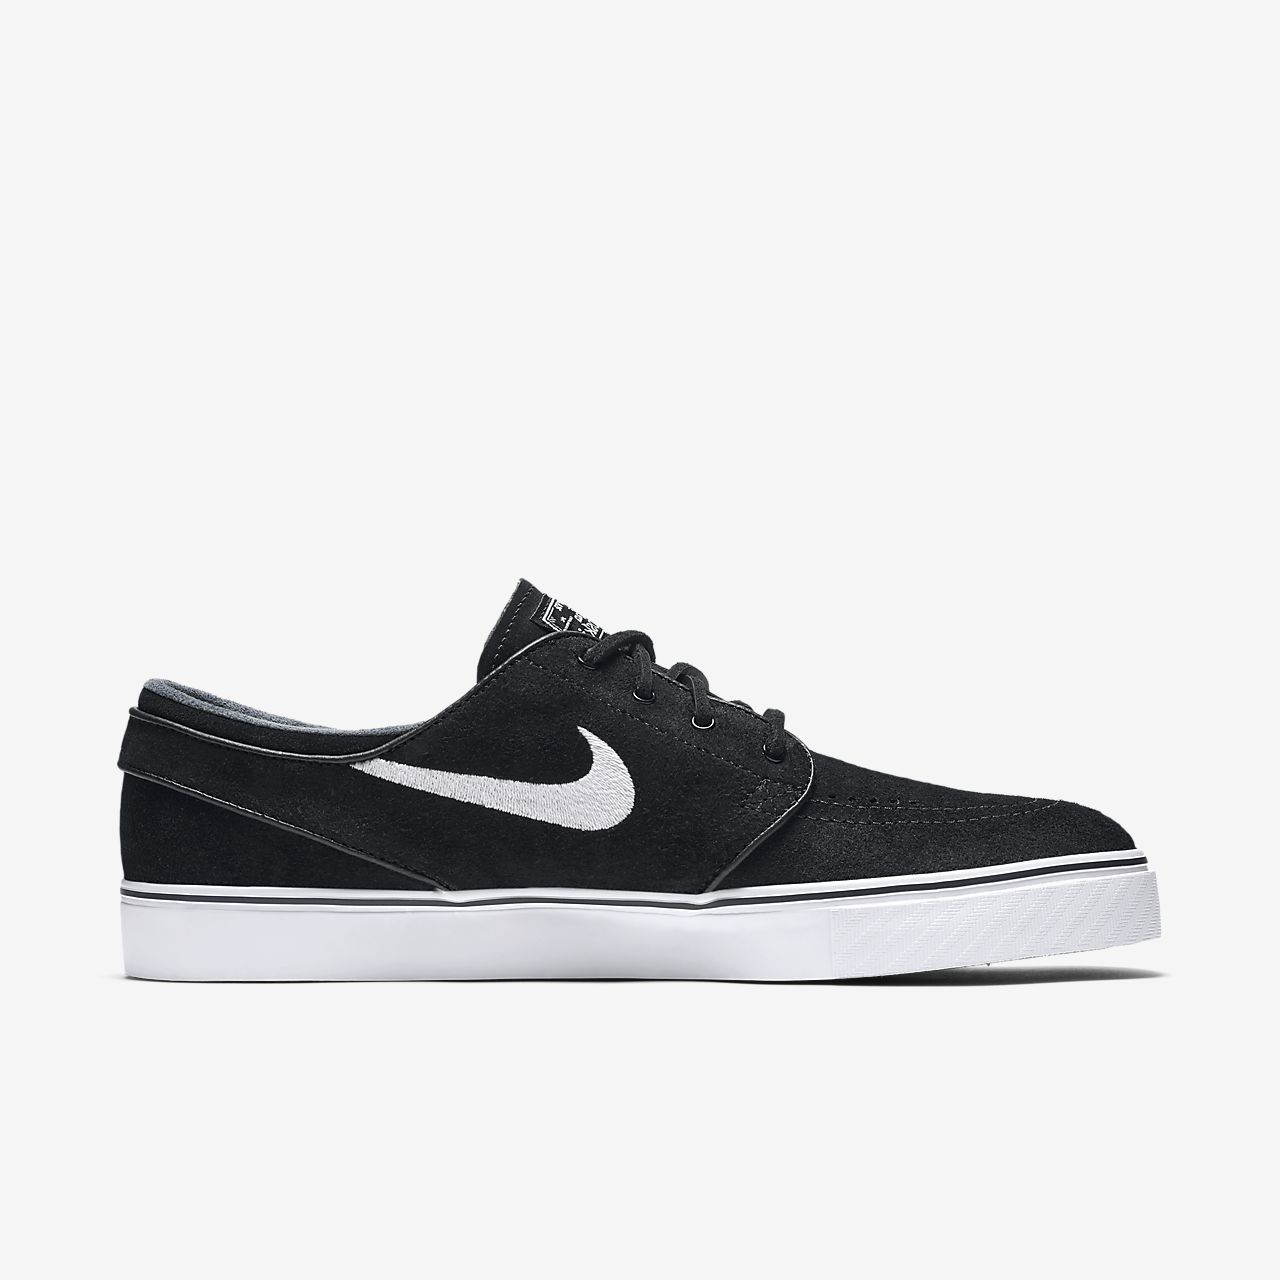 check out 09f09 1bda6 ... Nike SB Zoom Stefan Janoski OG Men s Skate Shoe